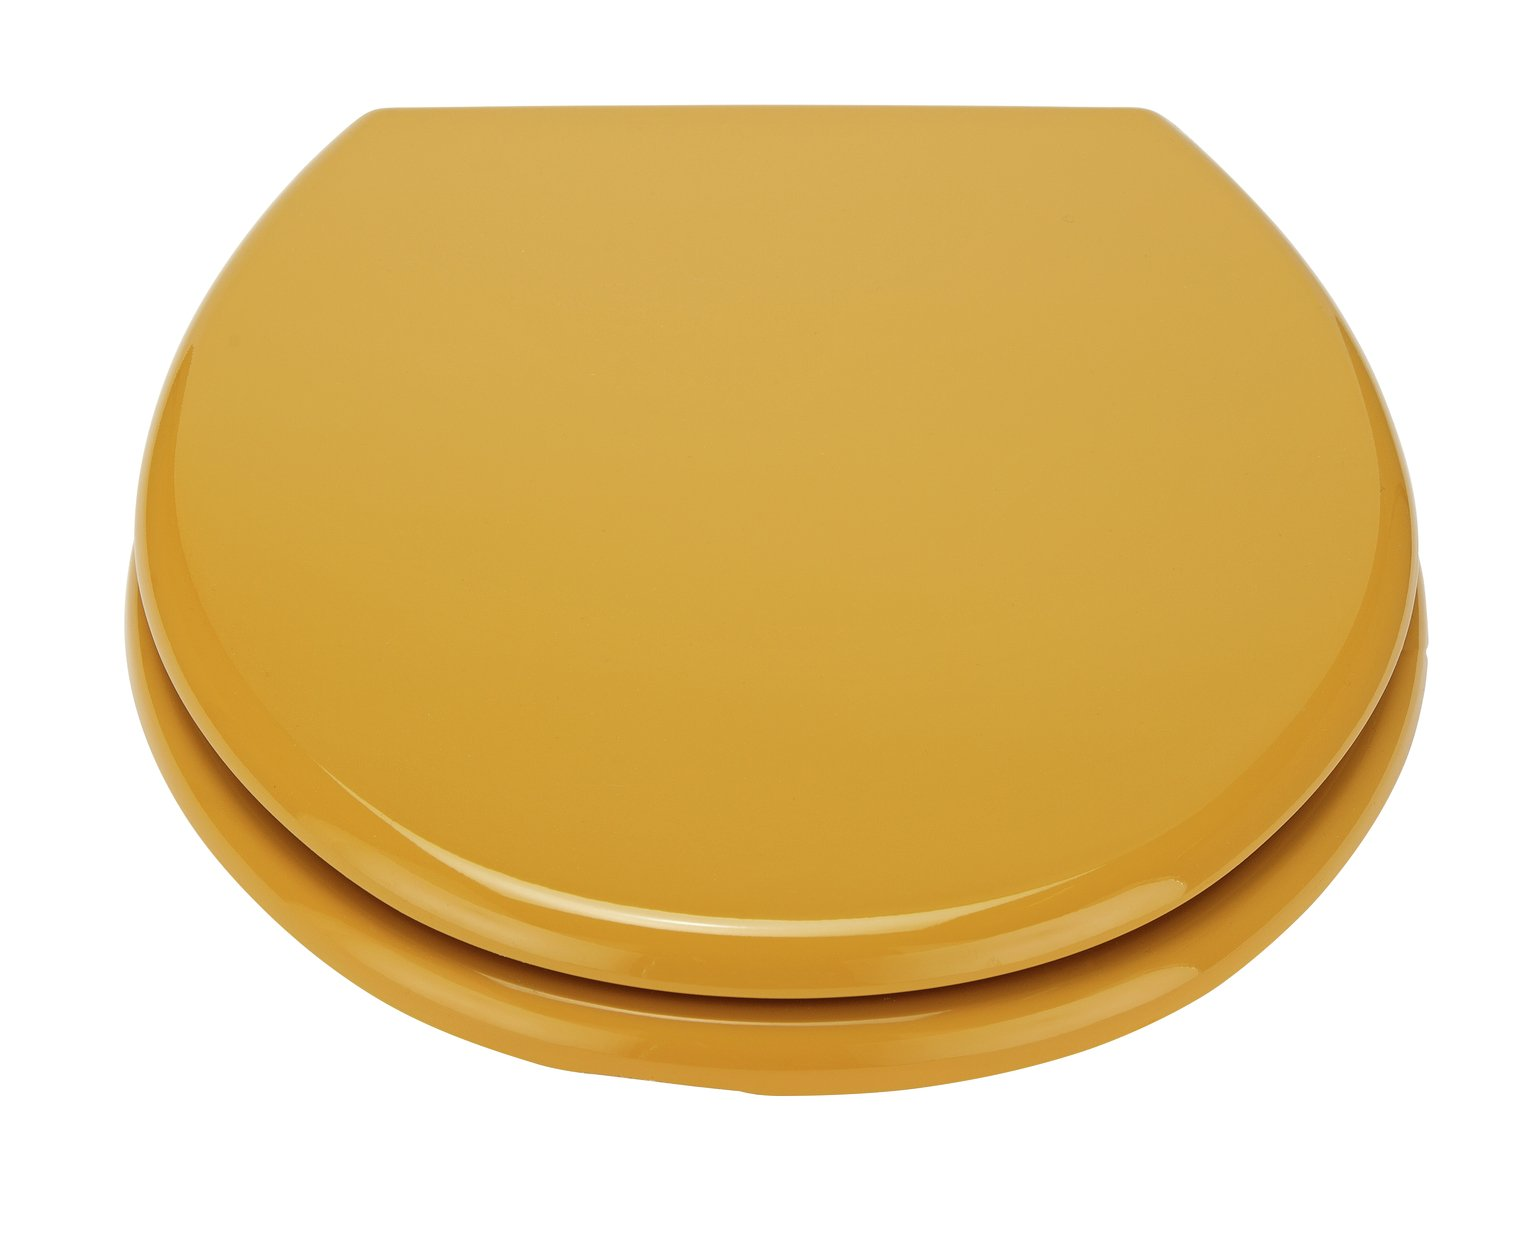 Argos Home Moulded Wood Toilet Seat - Mustard